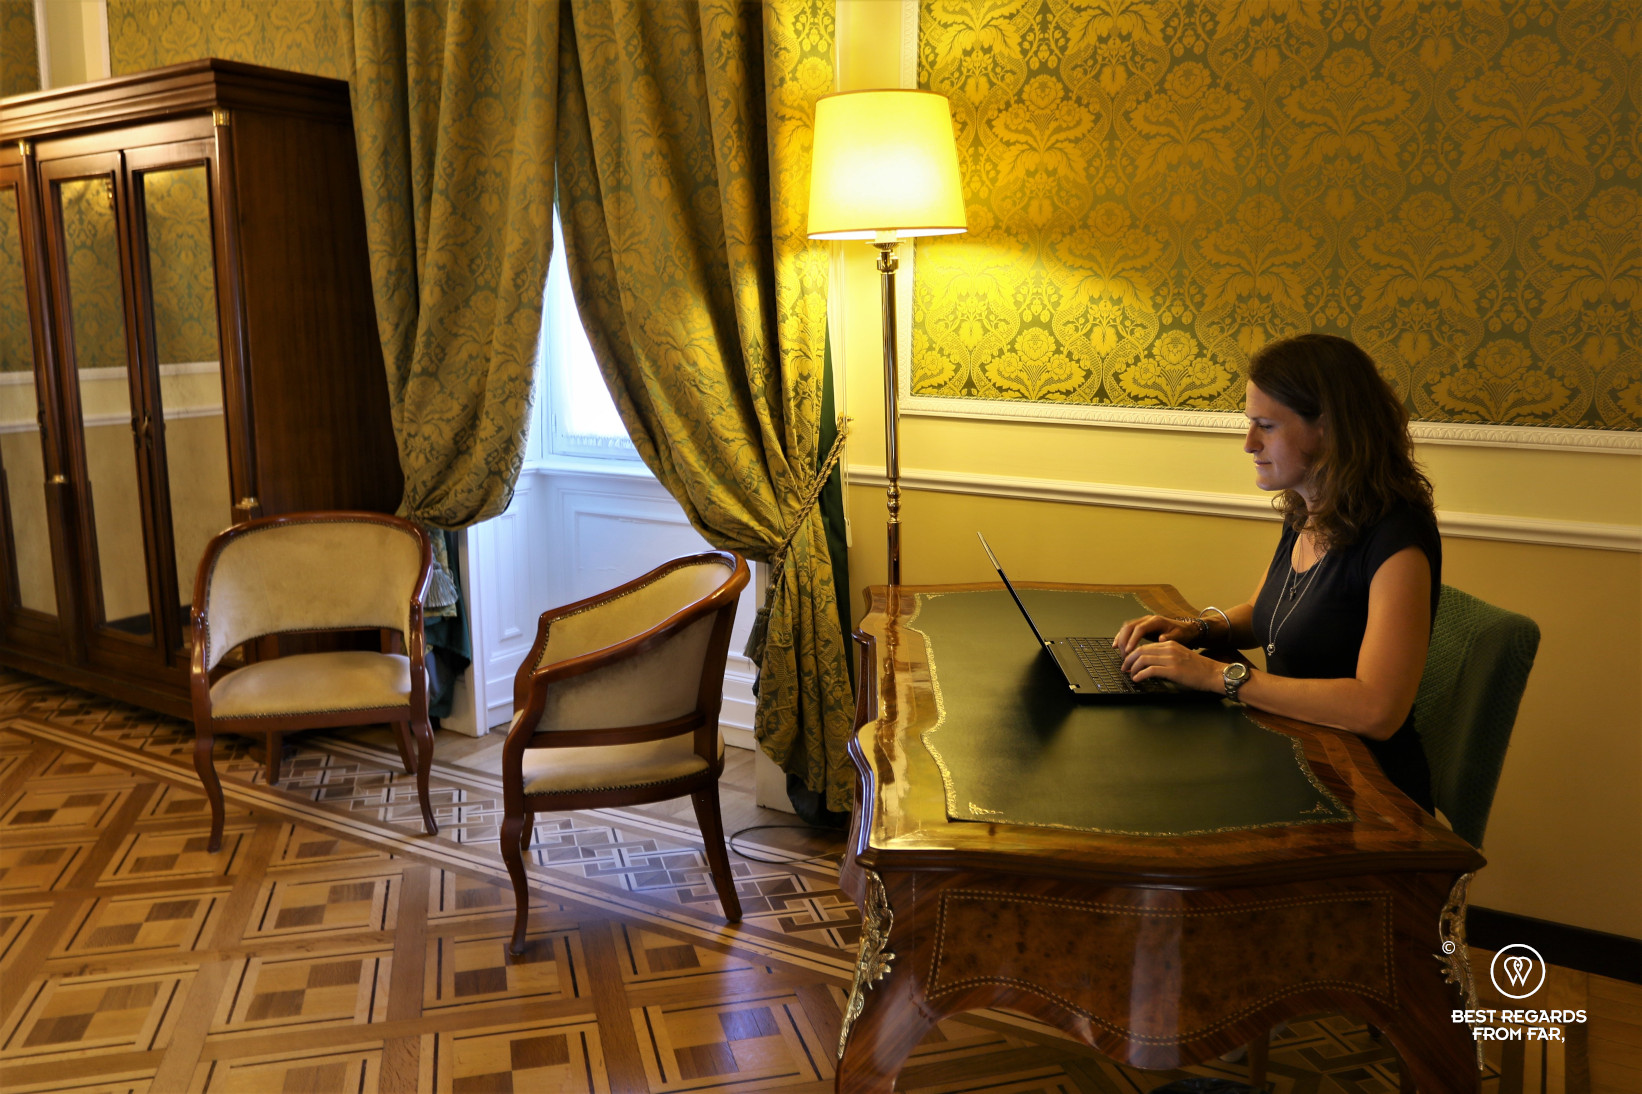 Woman working at a destk in a stylish hotel bedroom in Italy